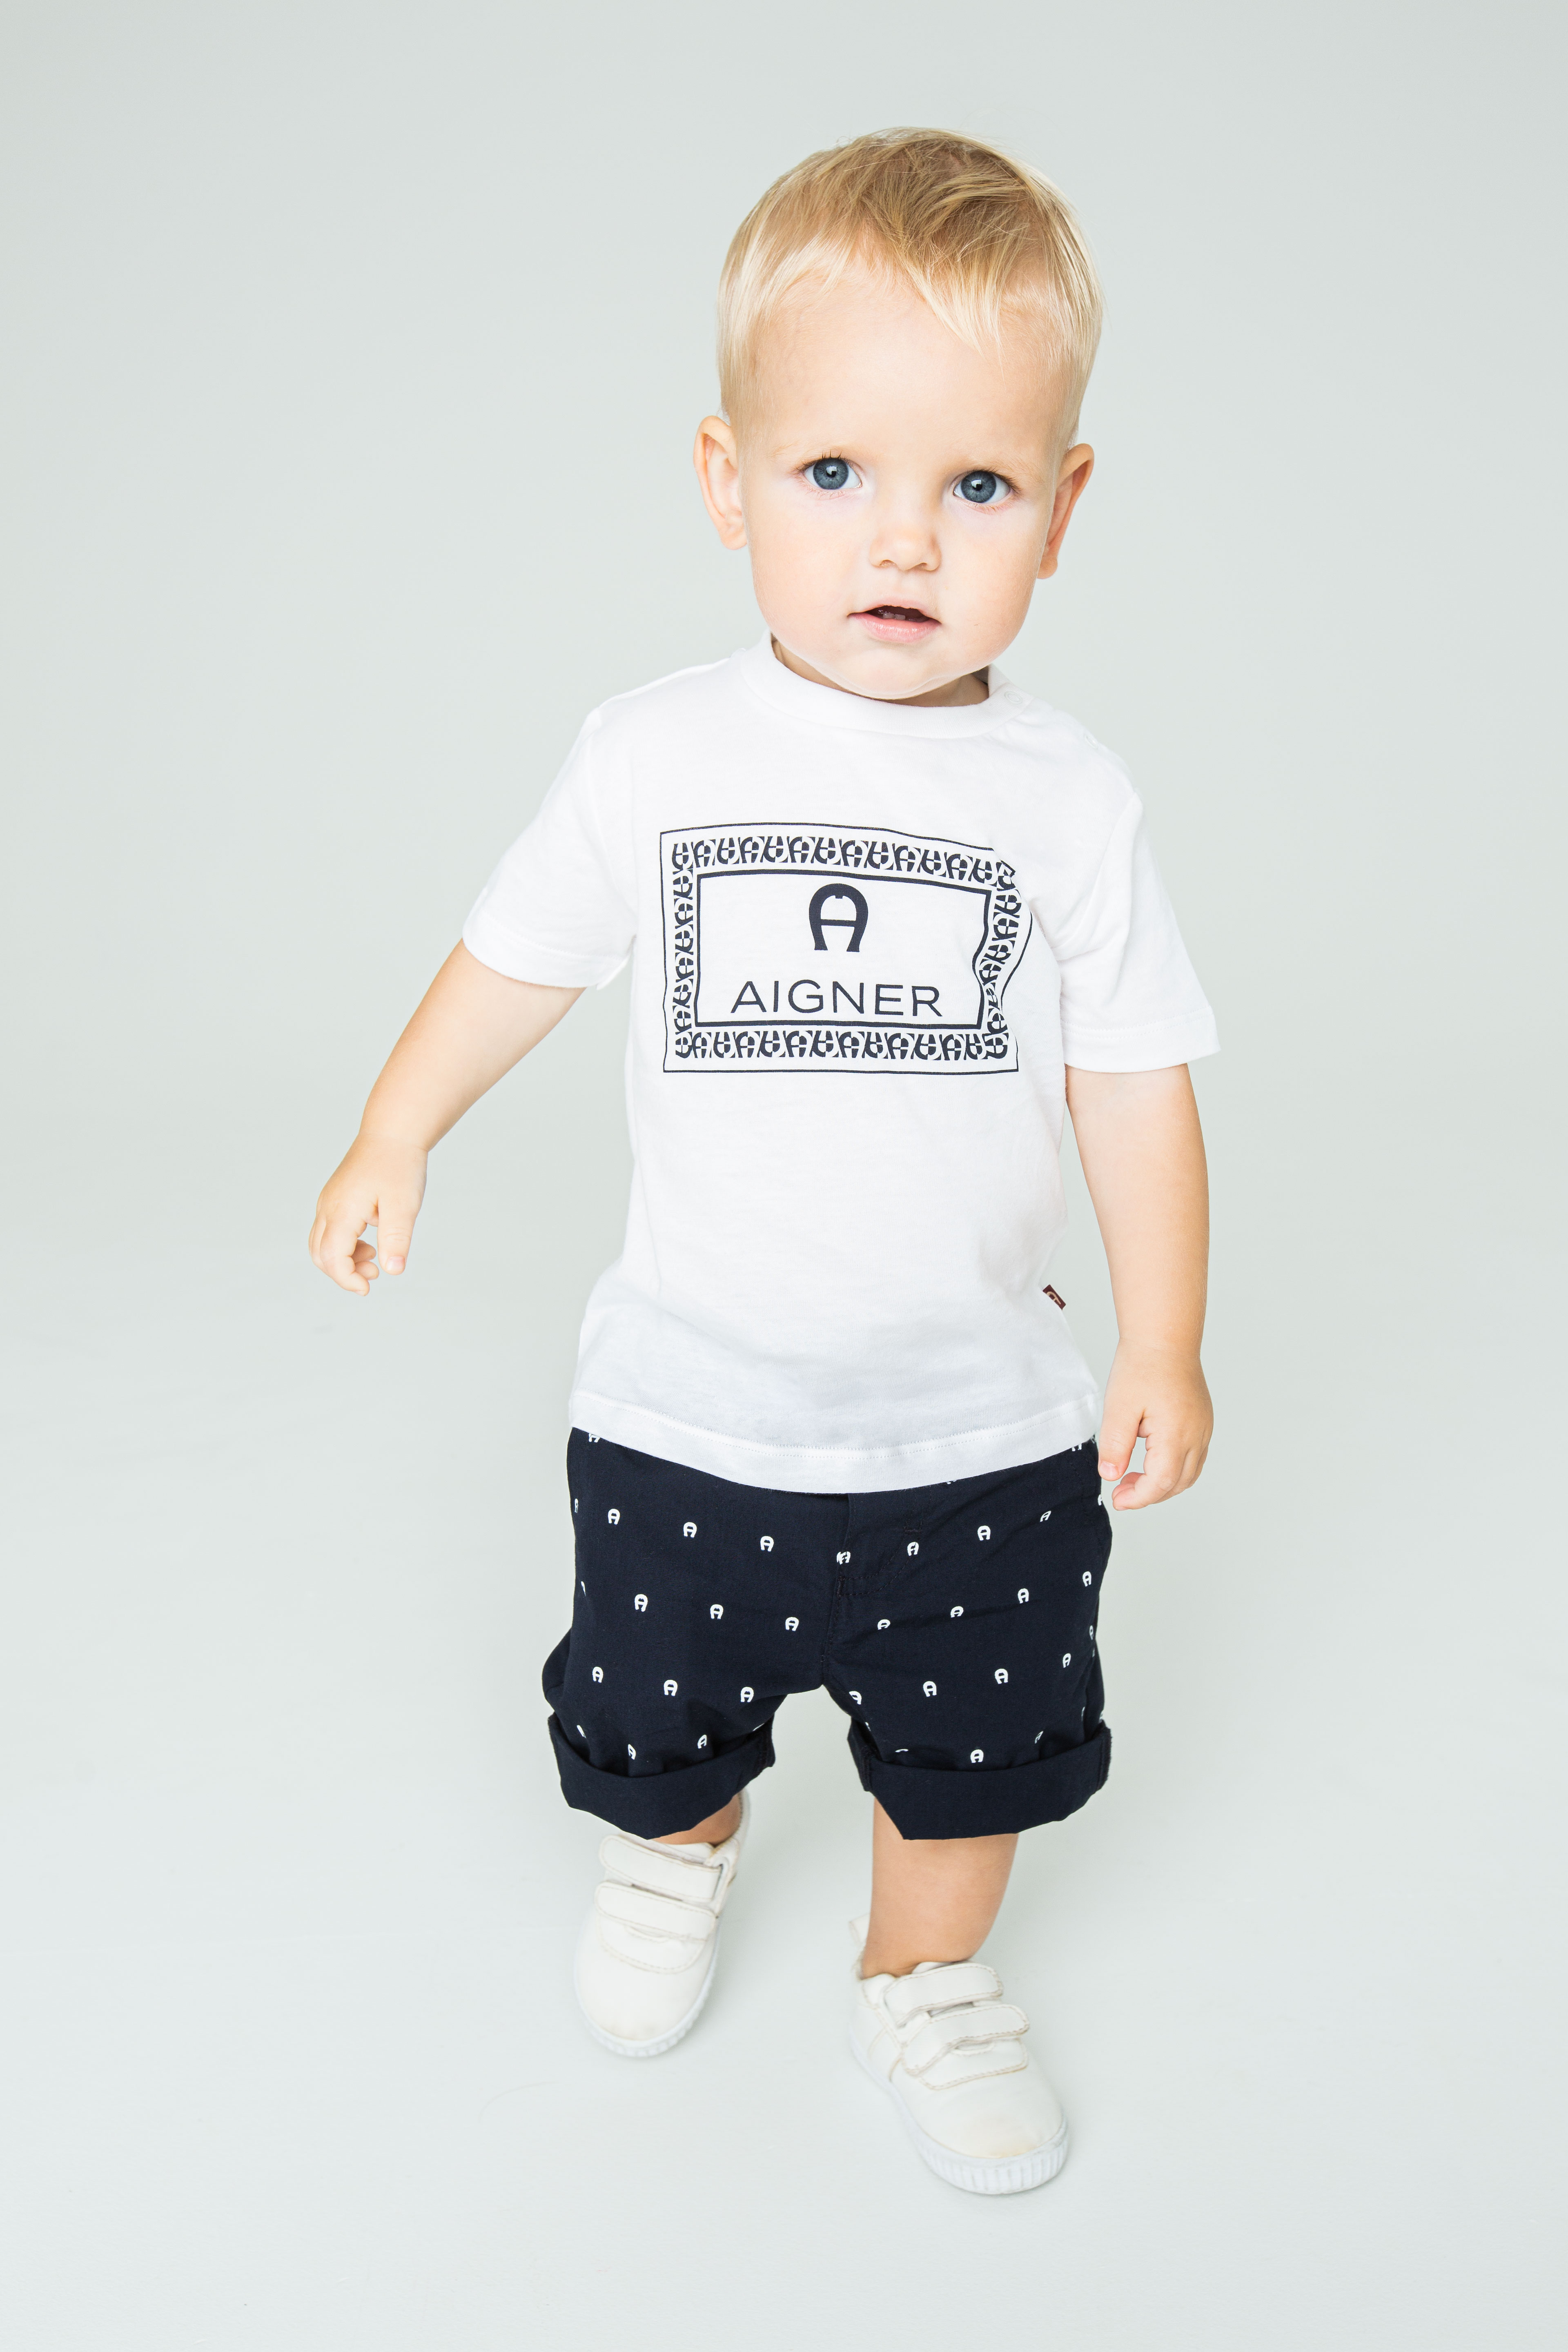 Aigner Kids_Outfitinspiration_Frühjahr_Sommer_2021_5